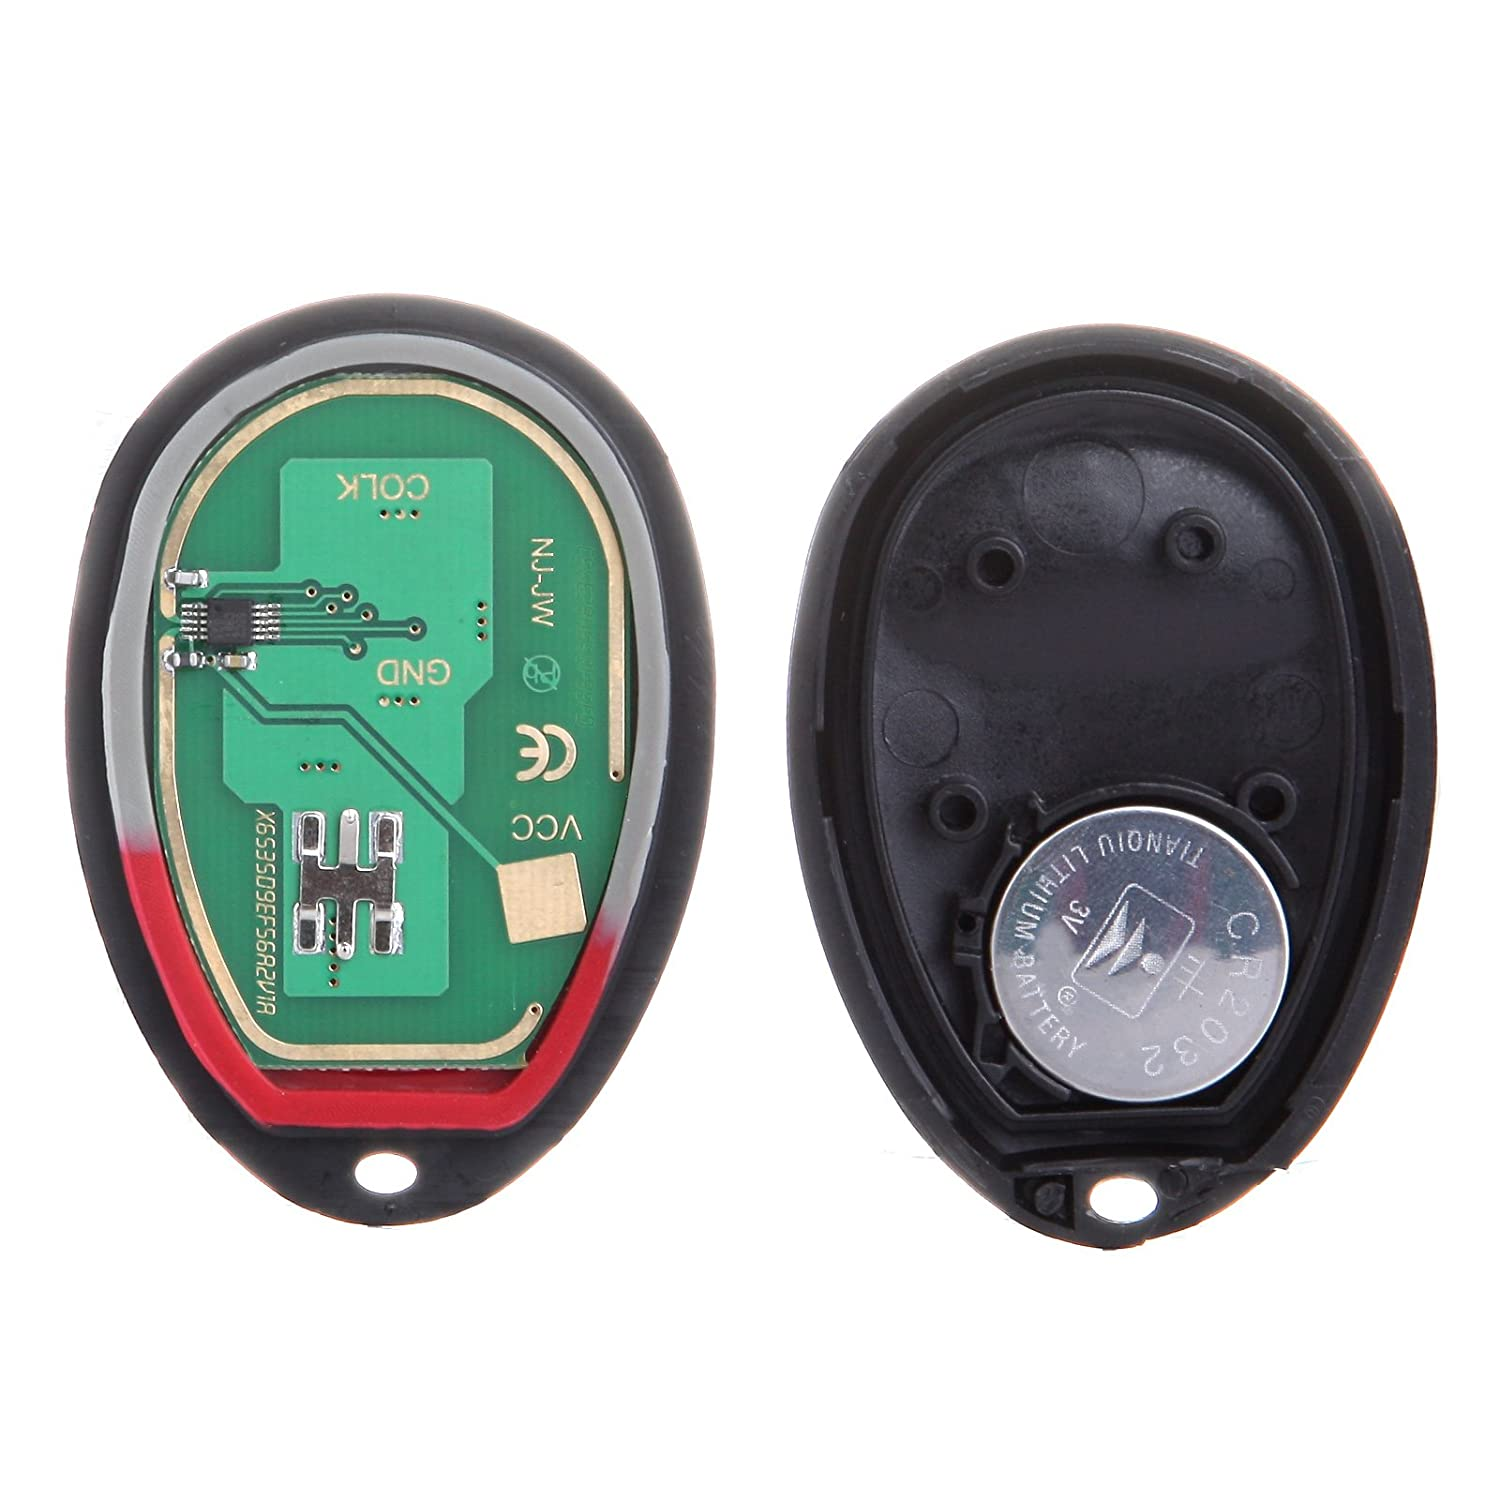 cciyu 1PC 3 Buttons Keyless Entry Remote Fob Replacement fit for Chevrolet Colorado Venture//Hummer H3 H3T// GMC Canyon//Isuzu i-280 i-290 I-350 i-370 L2C0007T